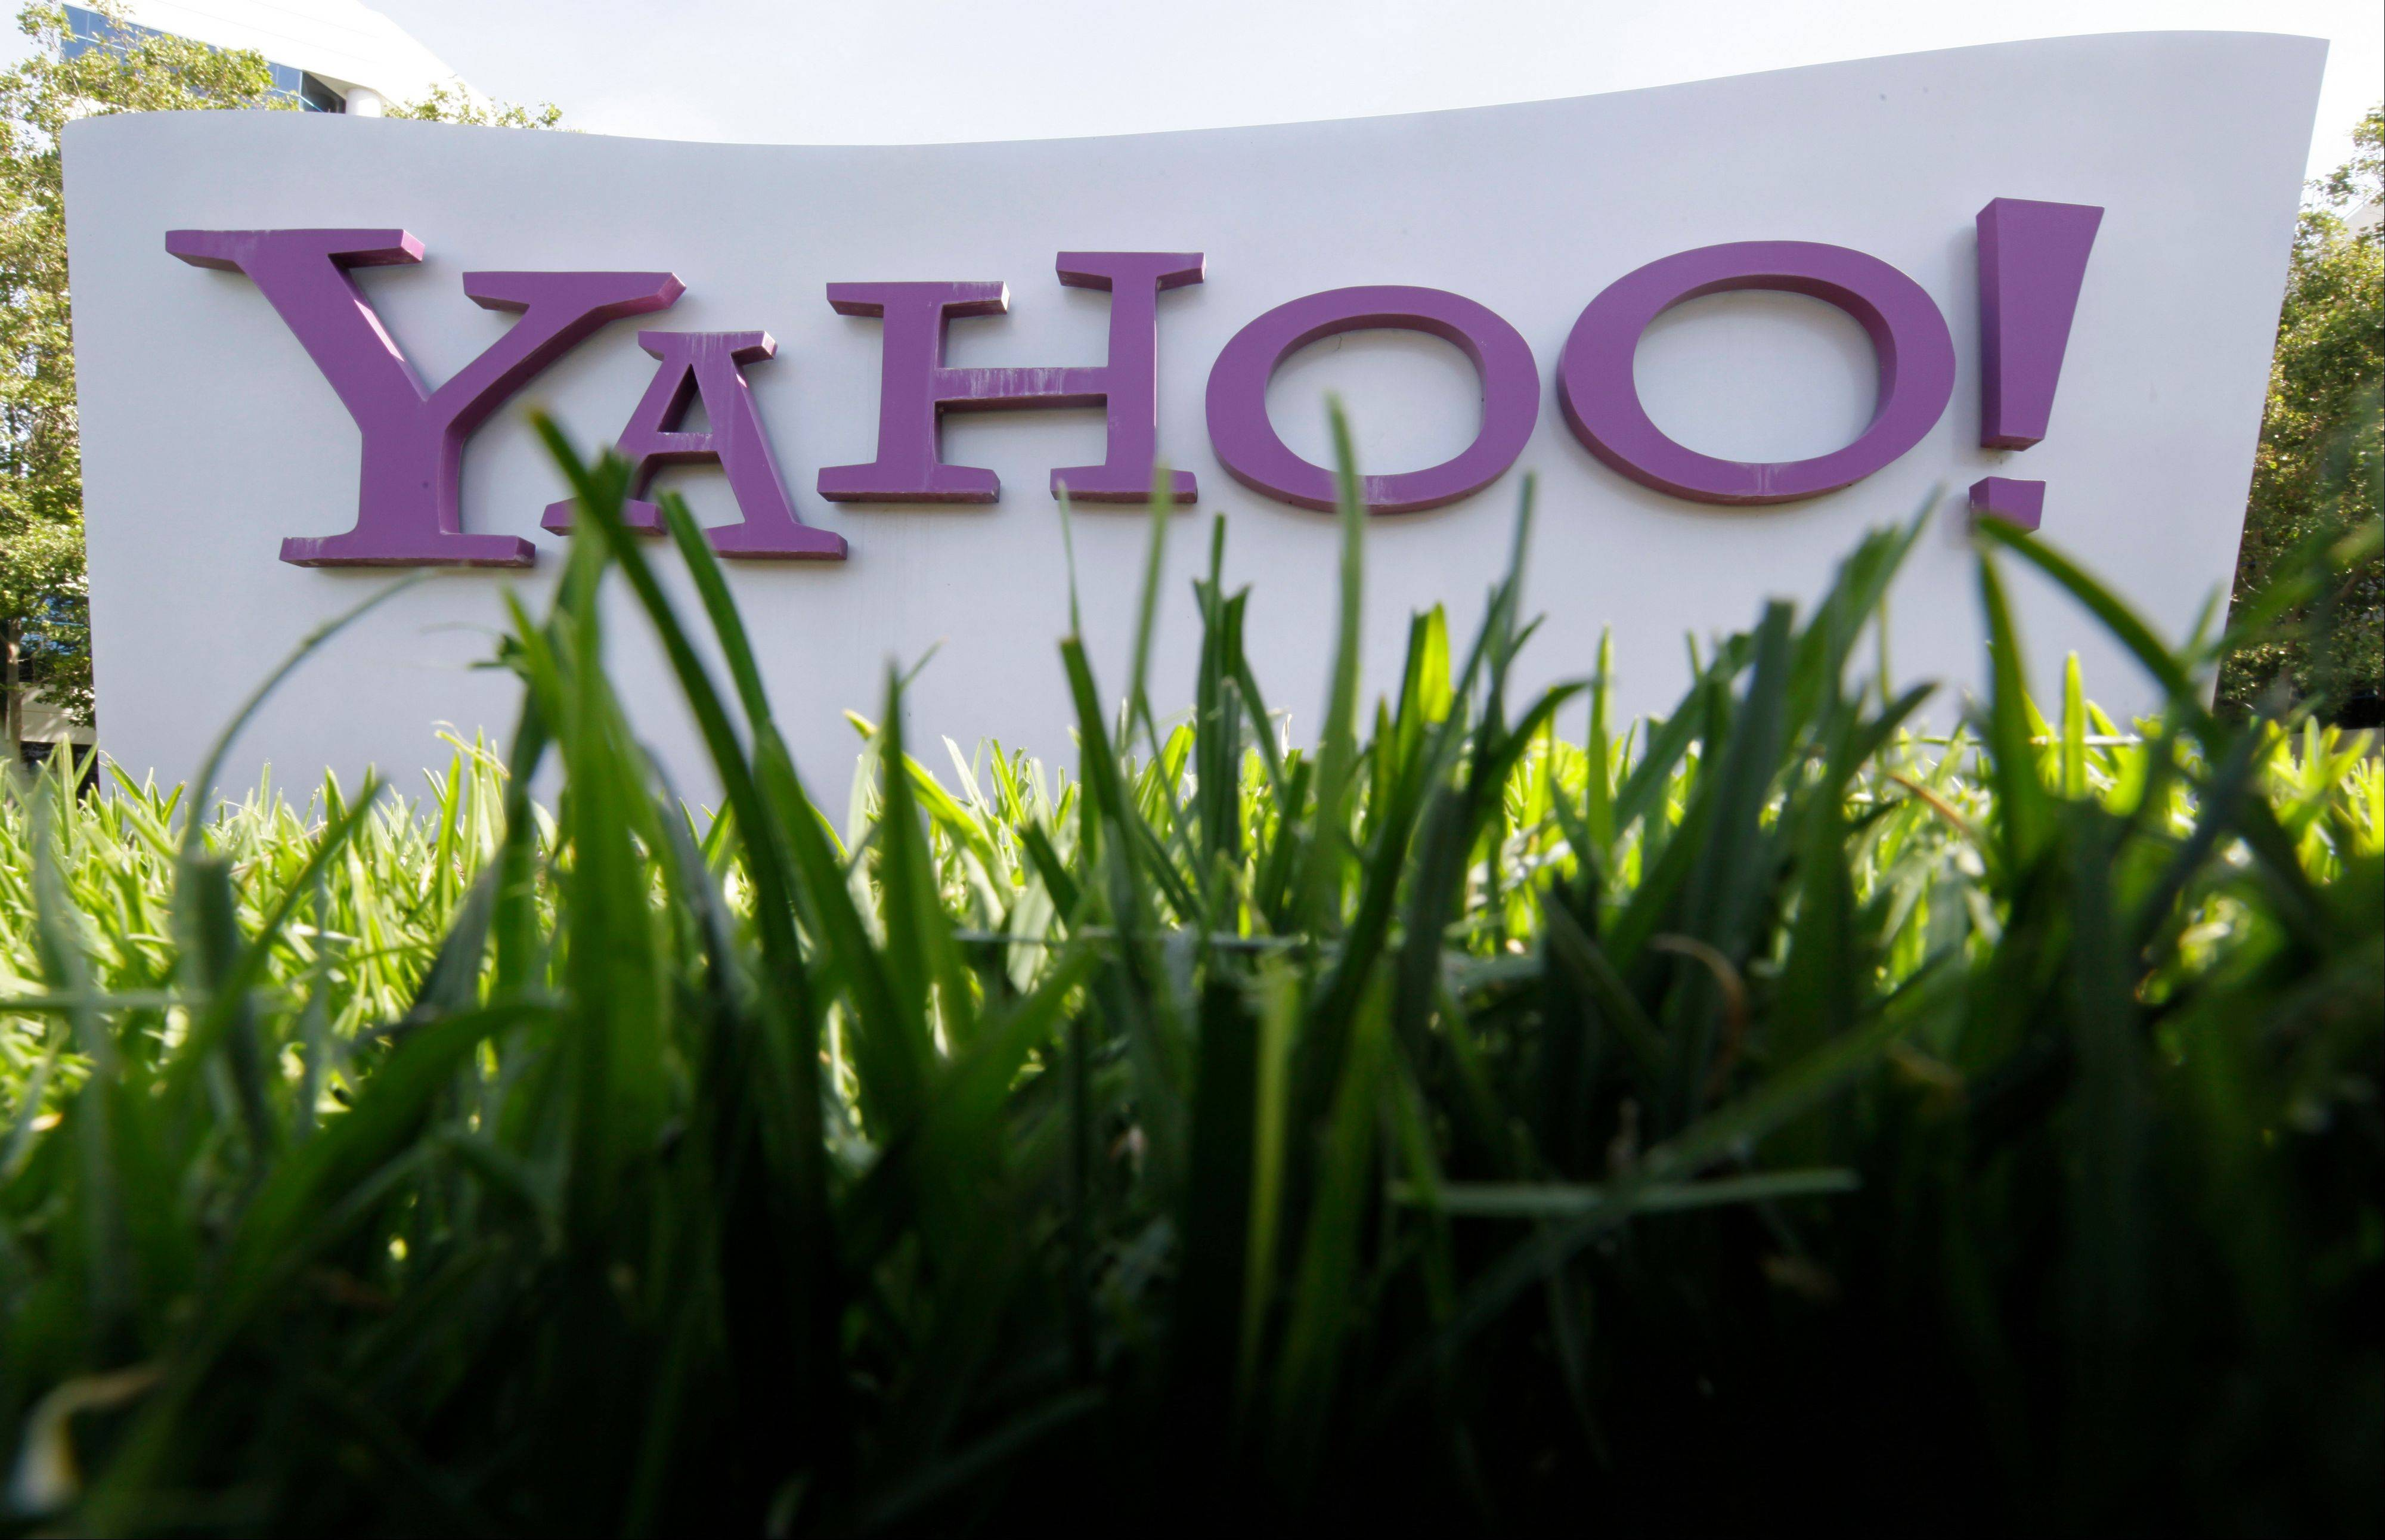 Yahoo turned in another lackluster performance in the second quarter announce the company on Tuesday. The results underscore the challenges facing Yahoo�s newly hired CEO Marissa Mayer as she tries to turn around the Internet company after a 13-year career as a top Google executive.